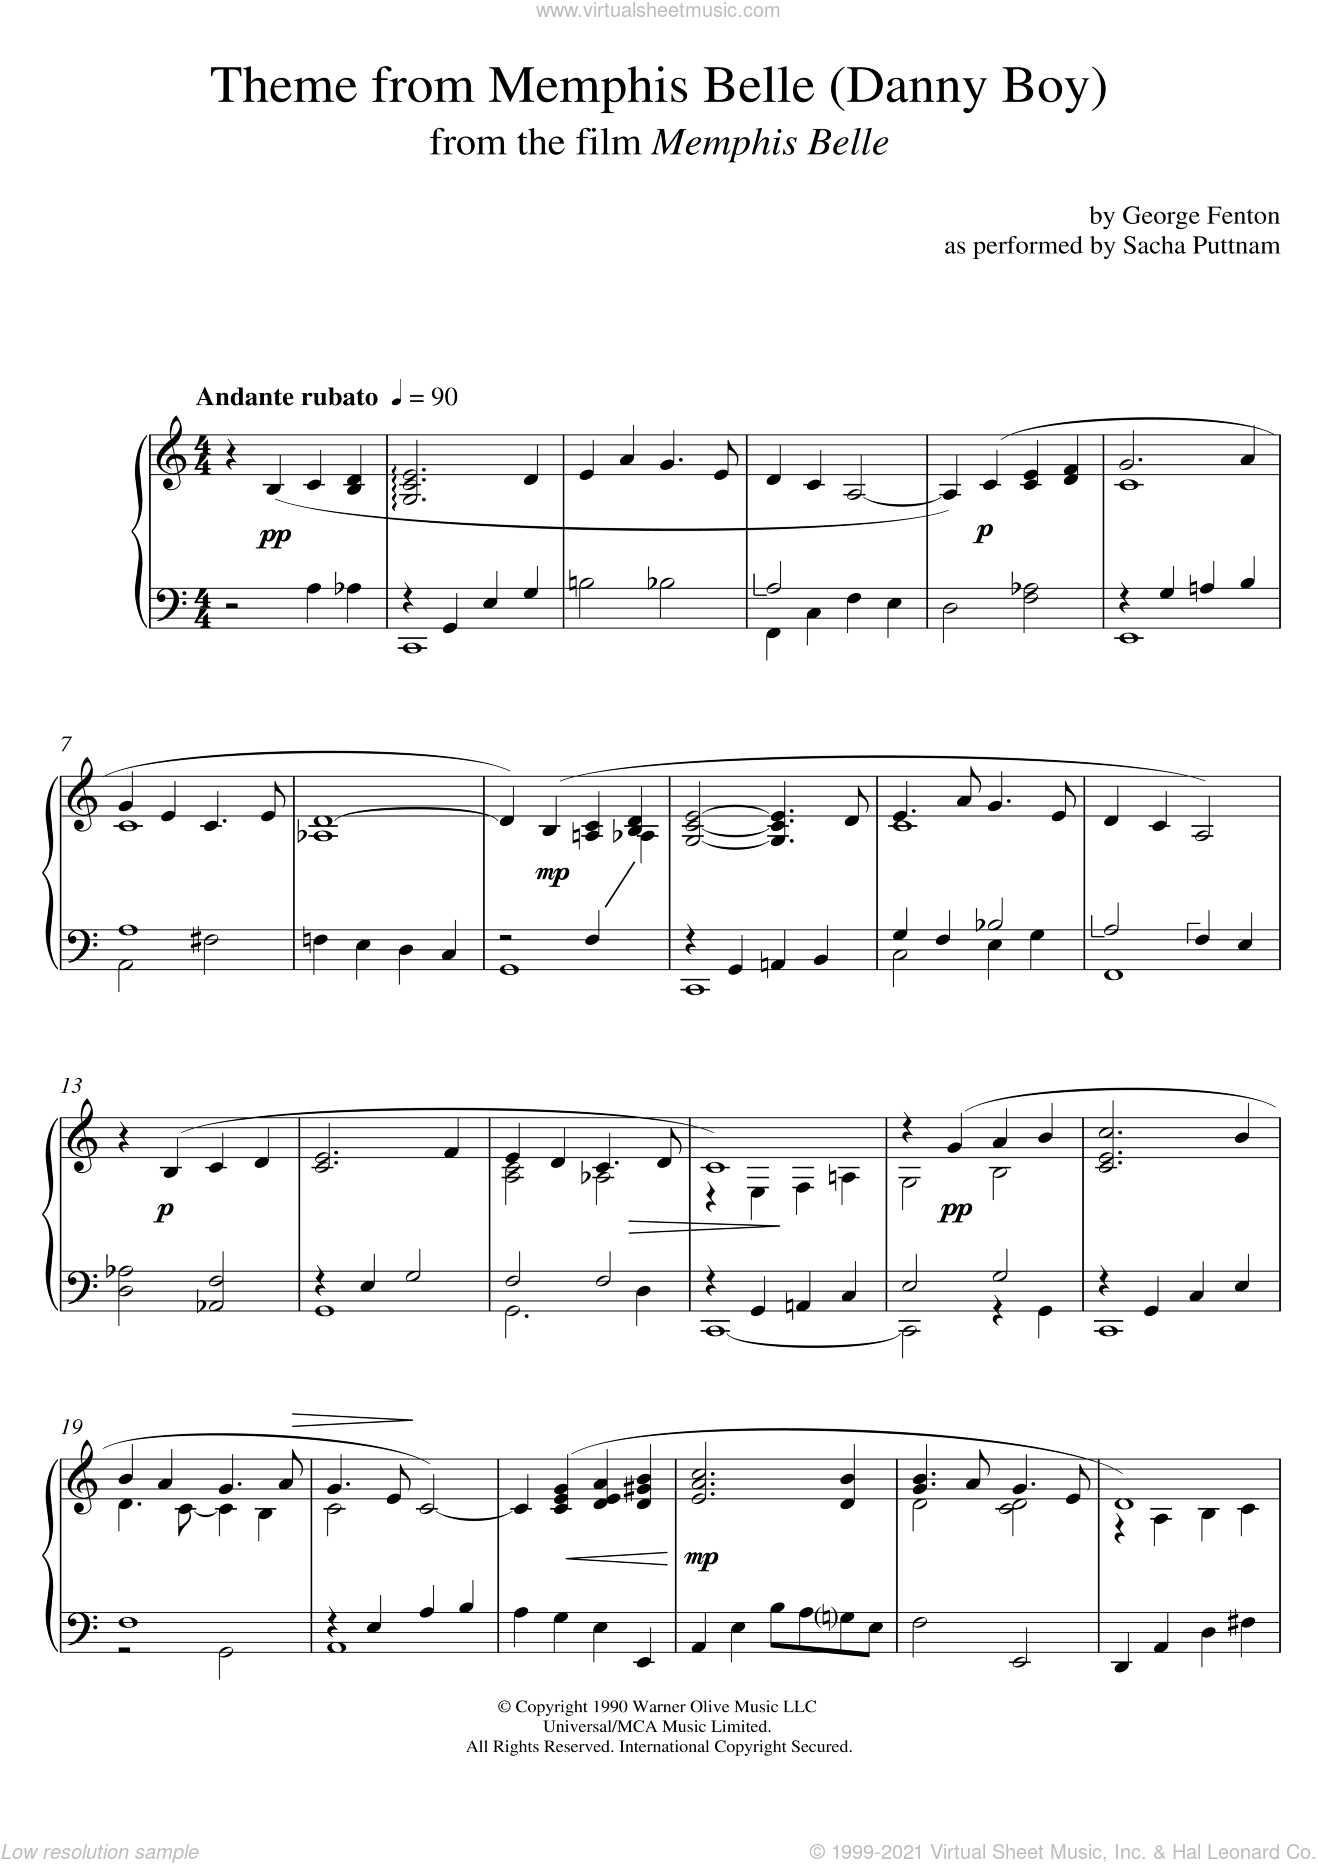 Memphis Belle (Main Title) (as performed by Sacha Puttnam) sheet music for piano solo by George Fenton and Sacha Puttnam, intermediate skill level